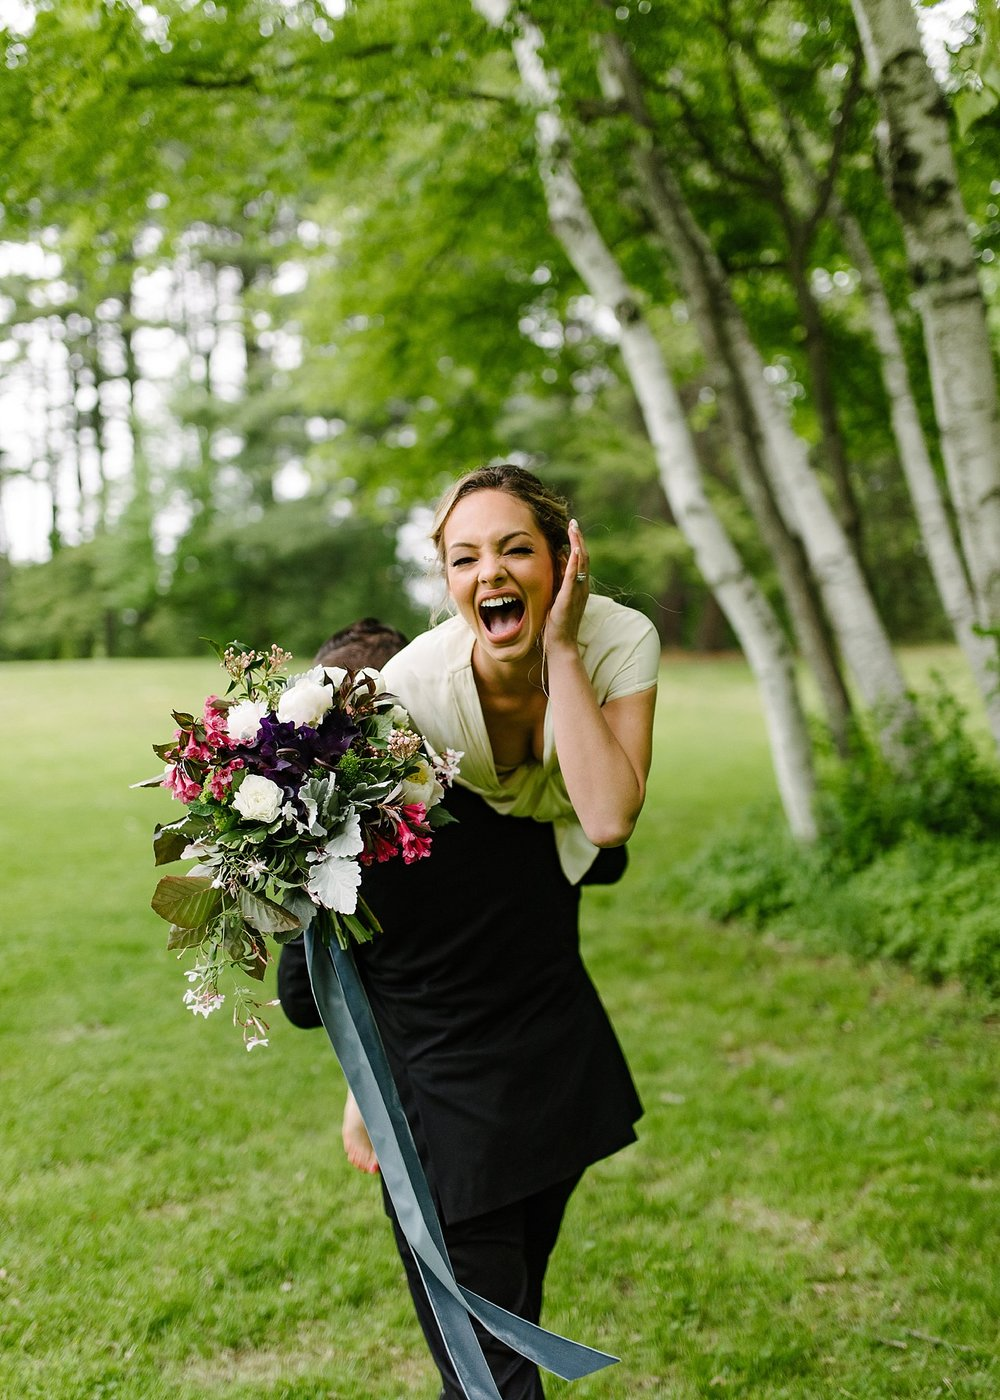 fun wedding photograph ideas.jpg